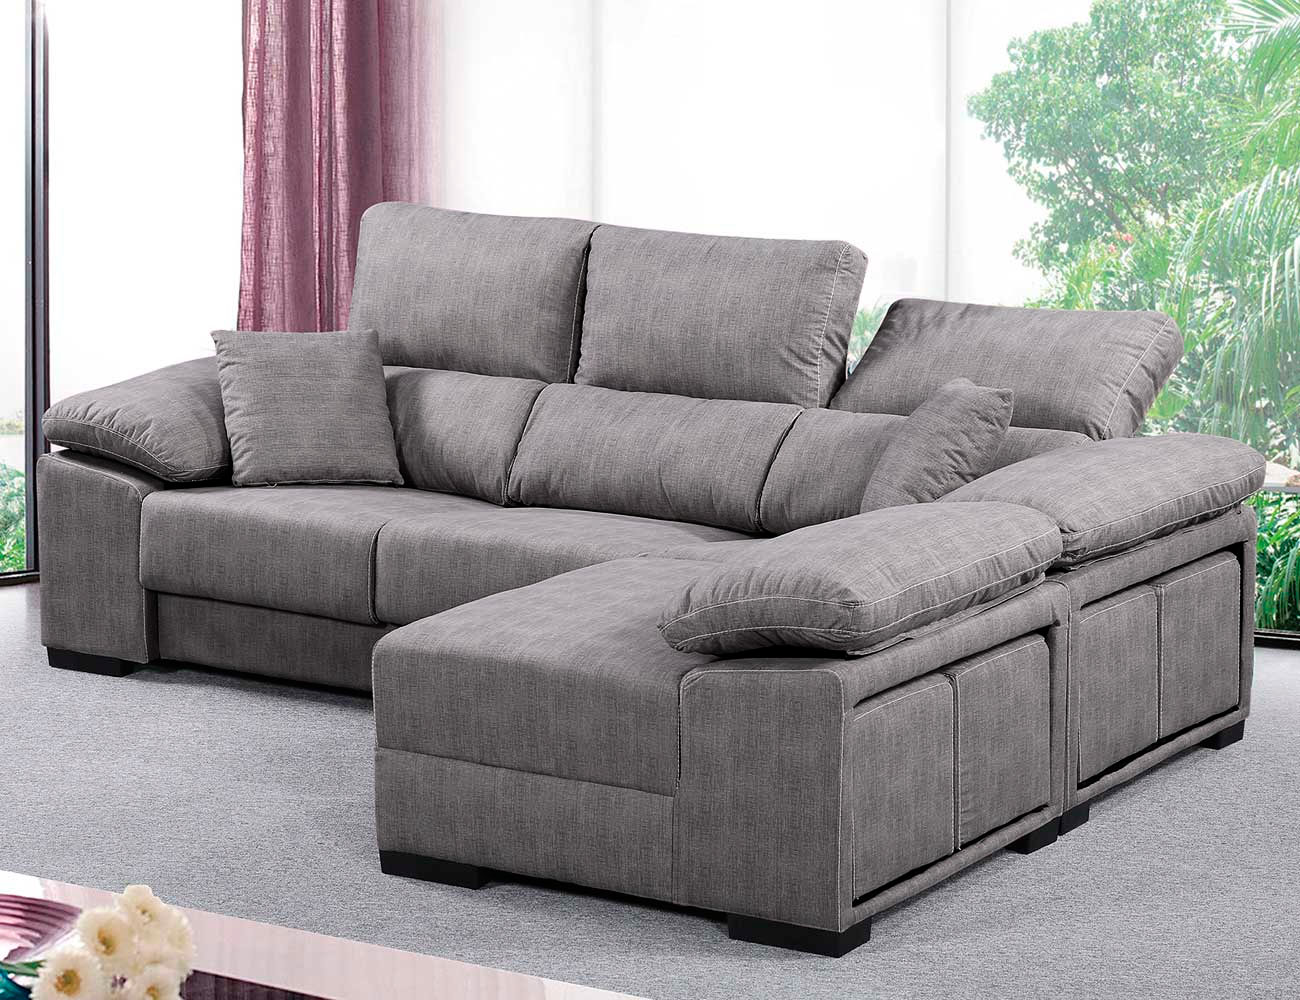 reversible sectional sofa chaise the brick beds with lounge